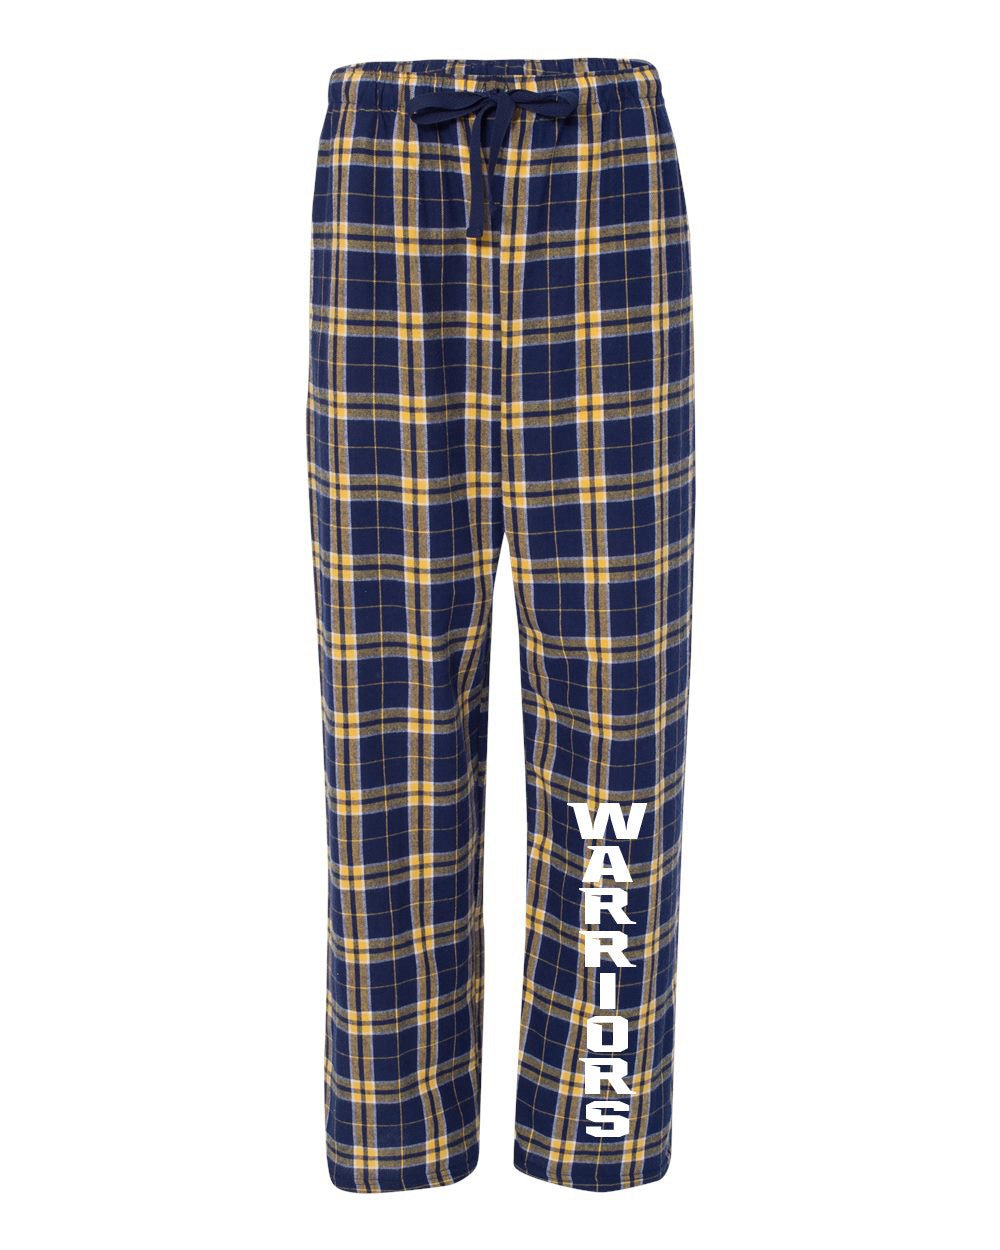 Youth Warriors Flannel Pants - Navy/Gold